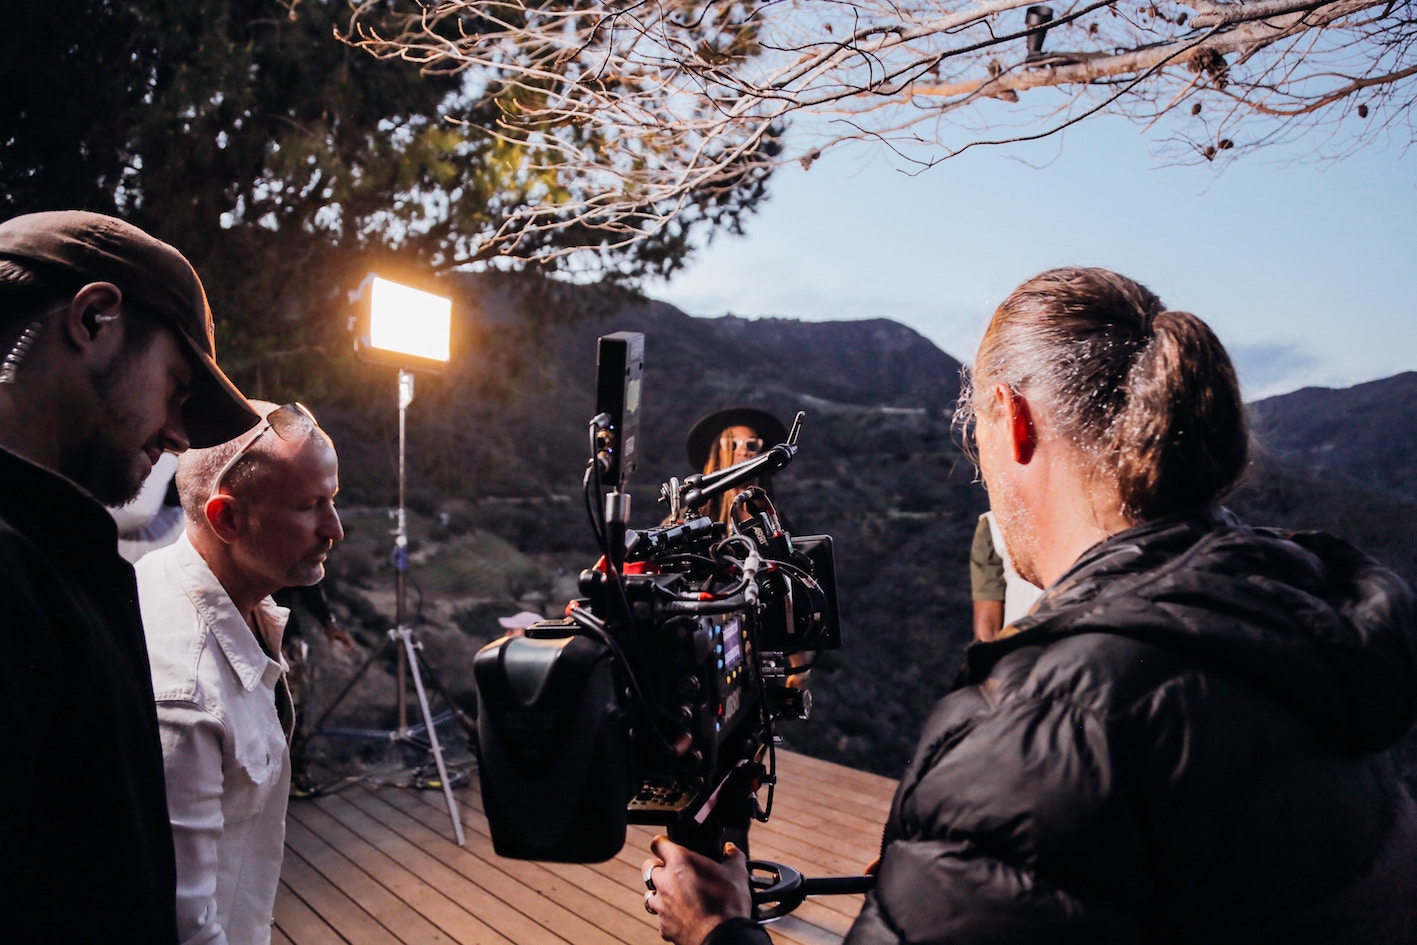 film crew and director behind camera in countryside scene